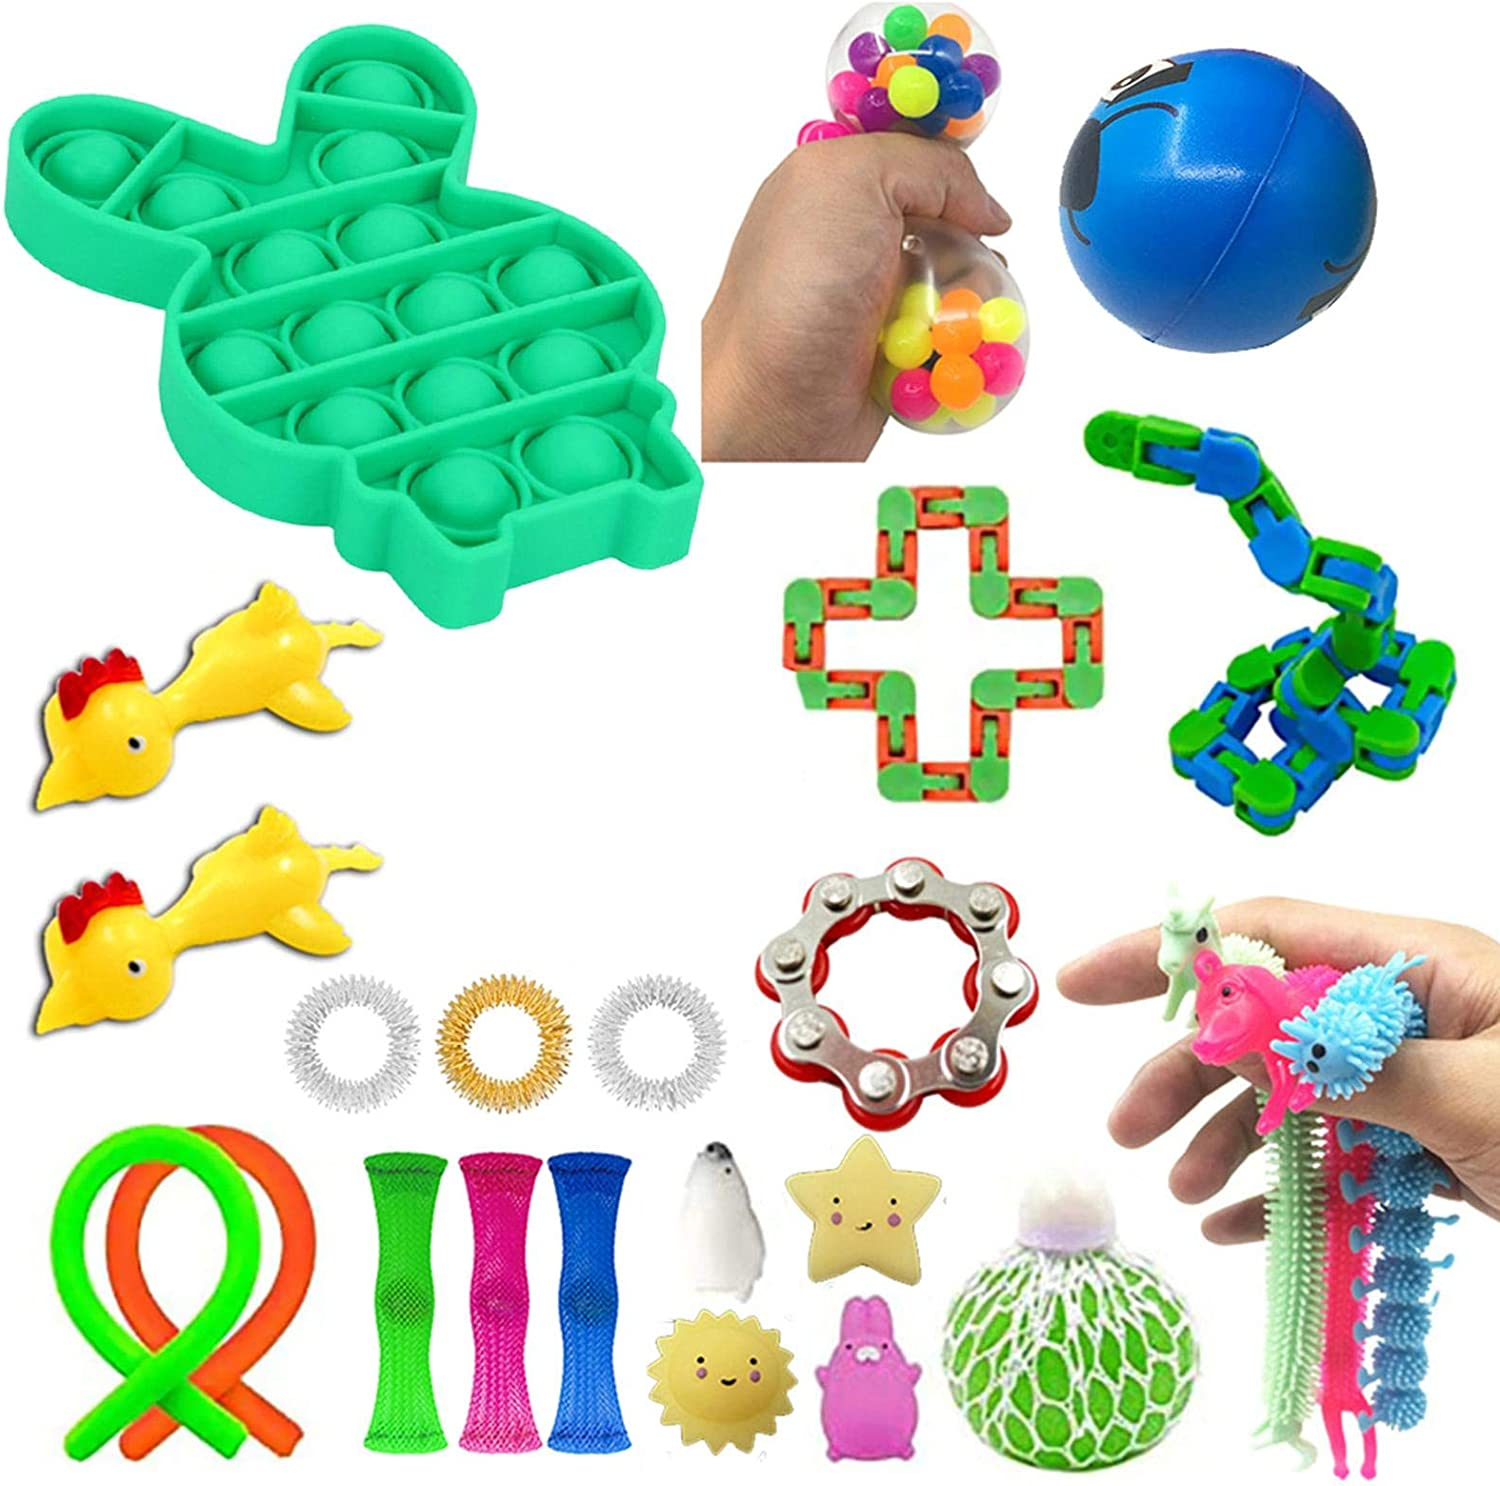 Dan/&Dre Sensory Toys Set for Kids and Adults Anti-Anxiety Toy Special Toys Assortment for Birthday Party